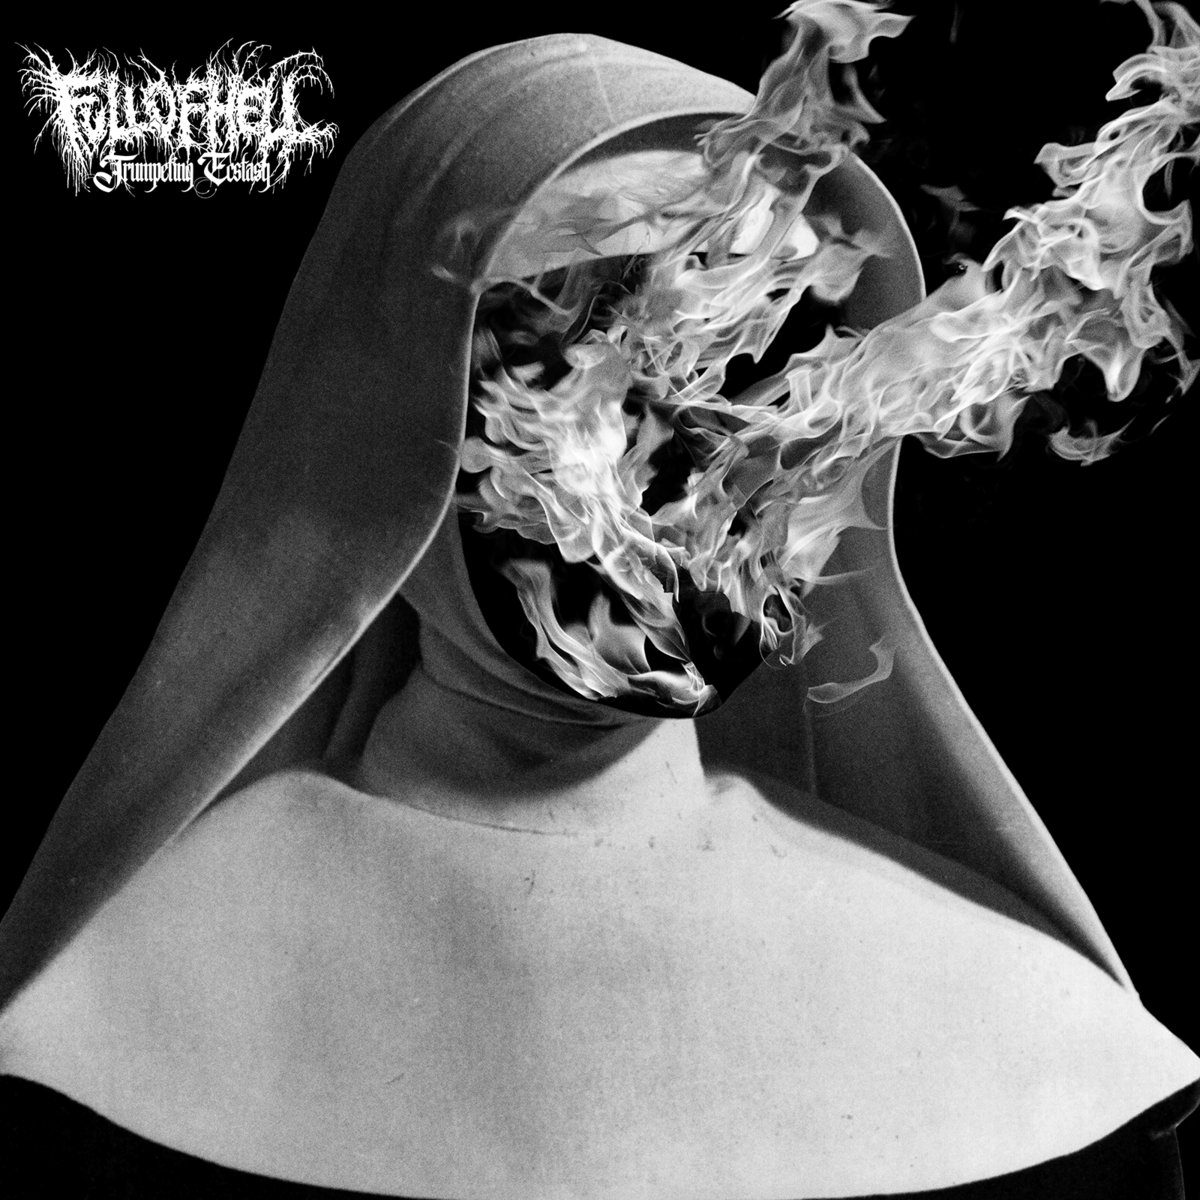 FULL OF HELL Trumpeting Ecstasy - Vinyl LP (black |clear)